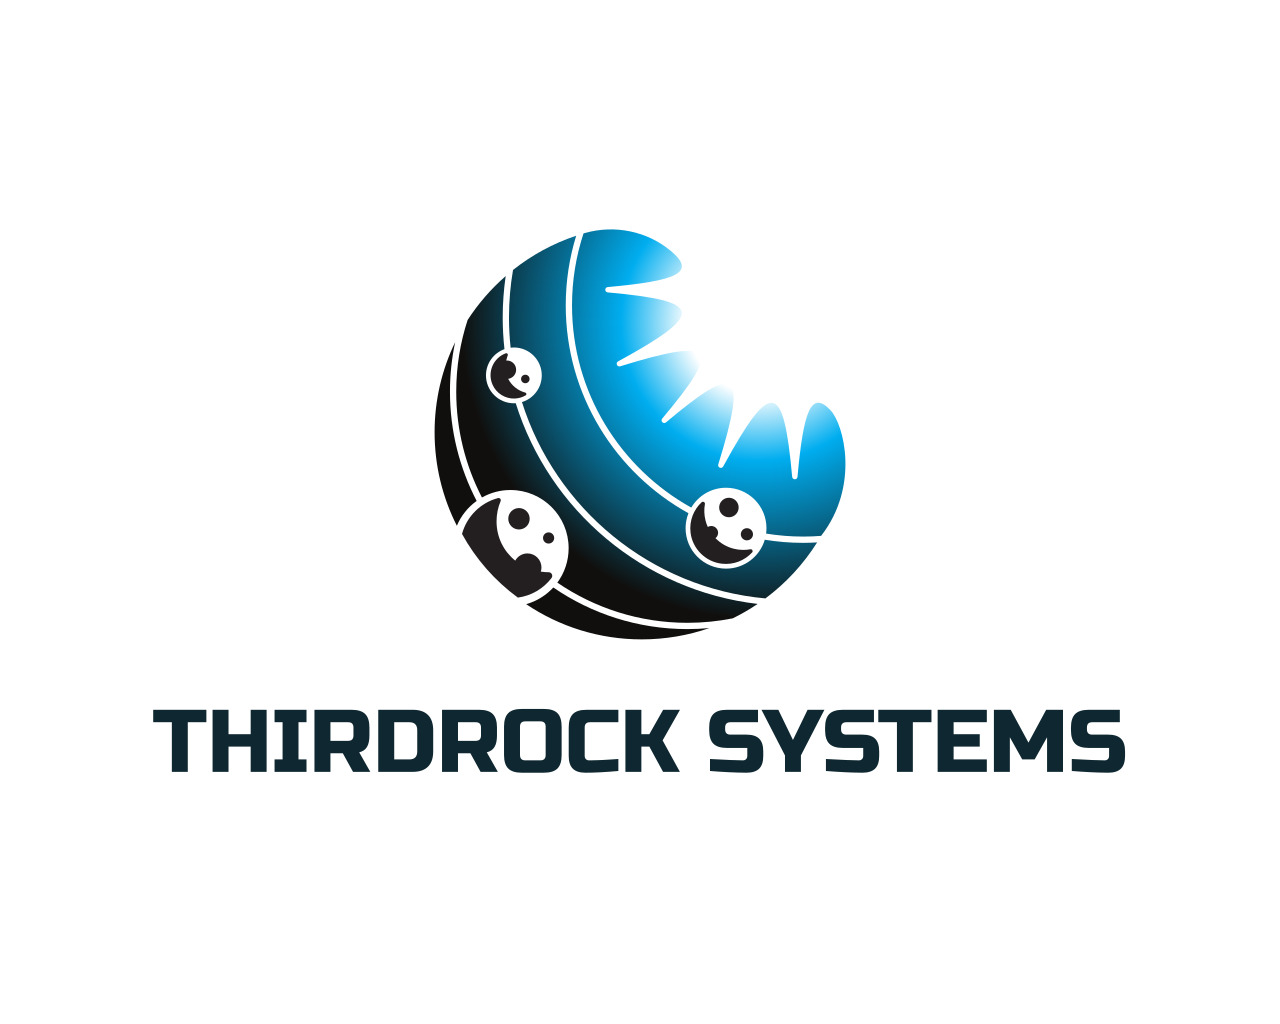 ThirdRock Systems